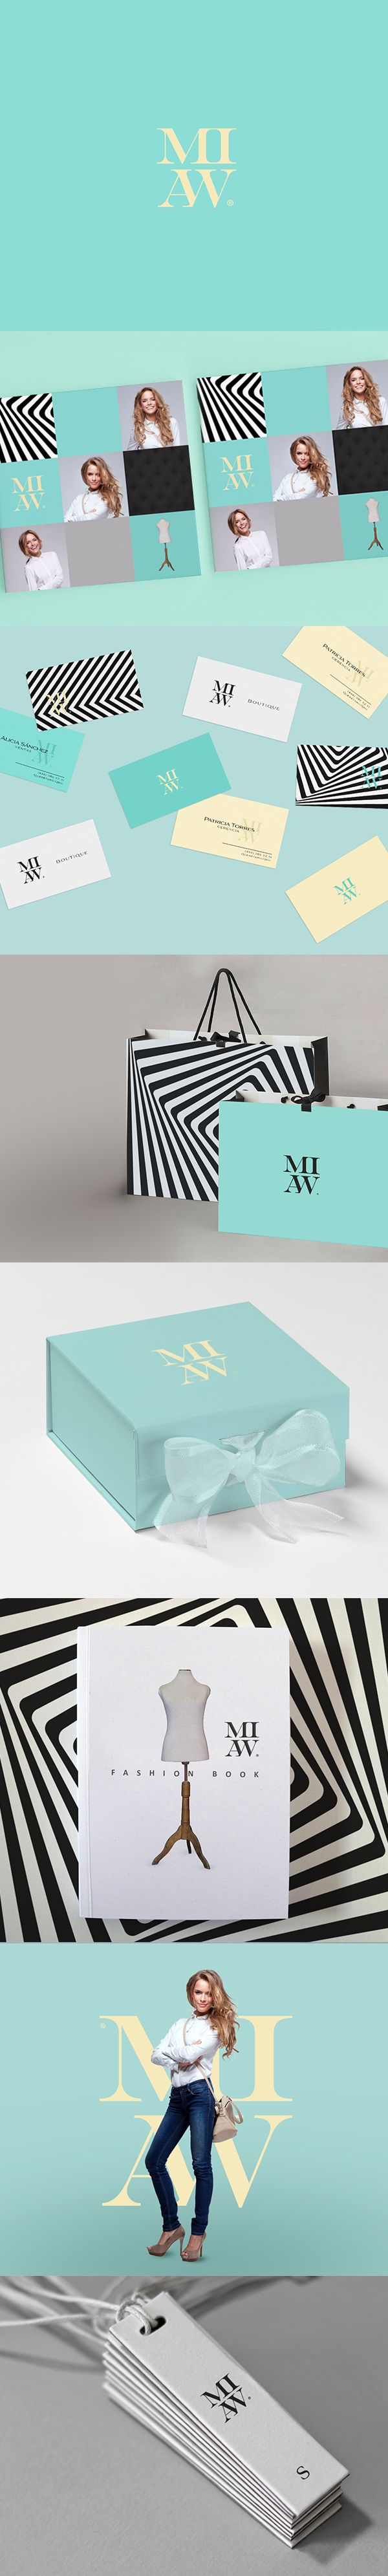 MIAW BOUTIQUE by Miguel Basurto, via Behance